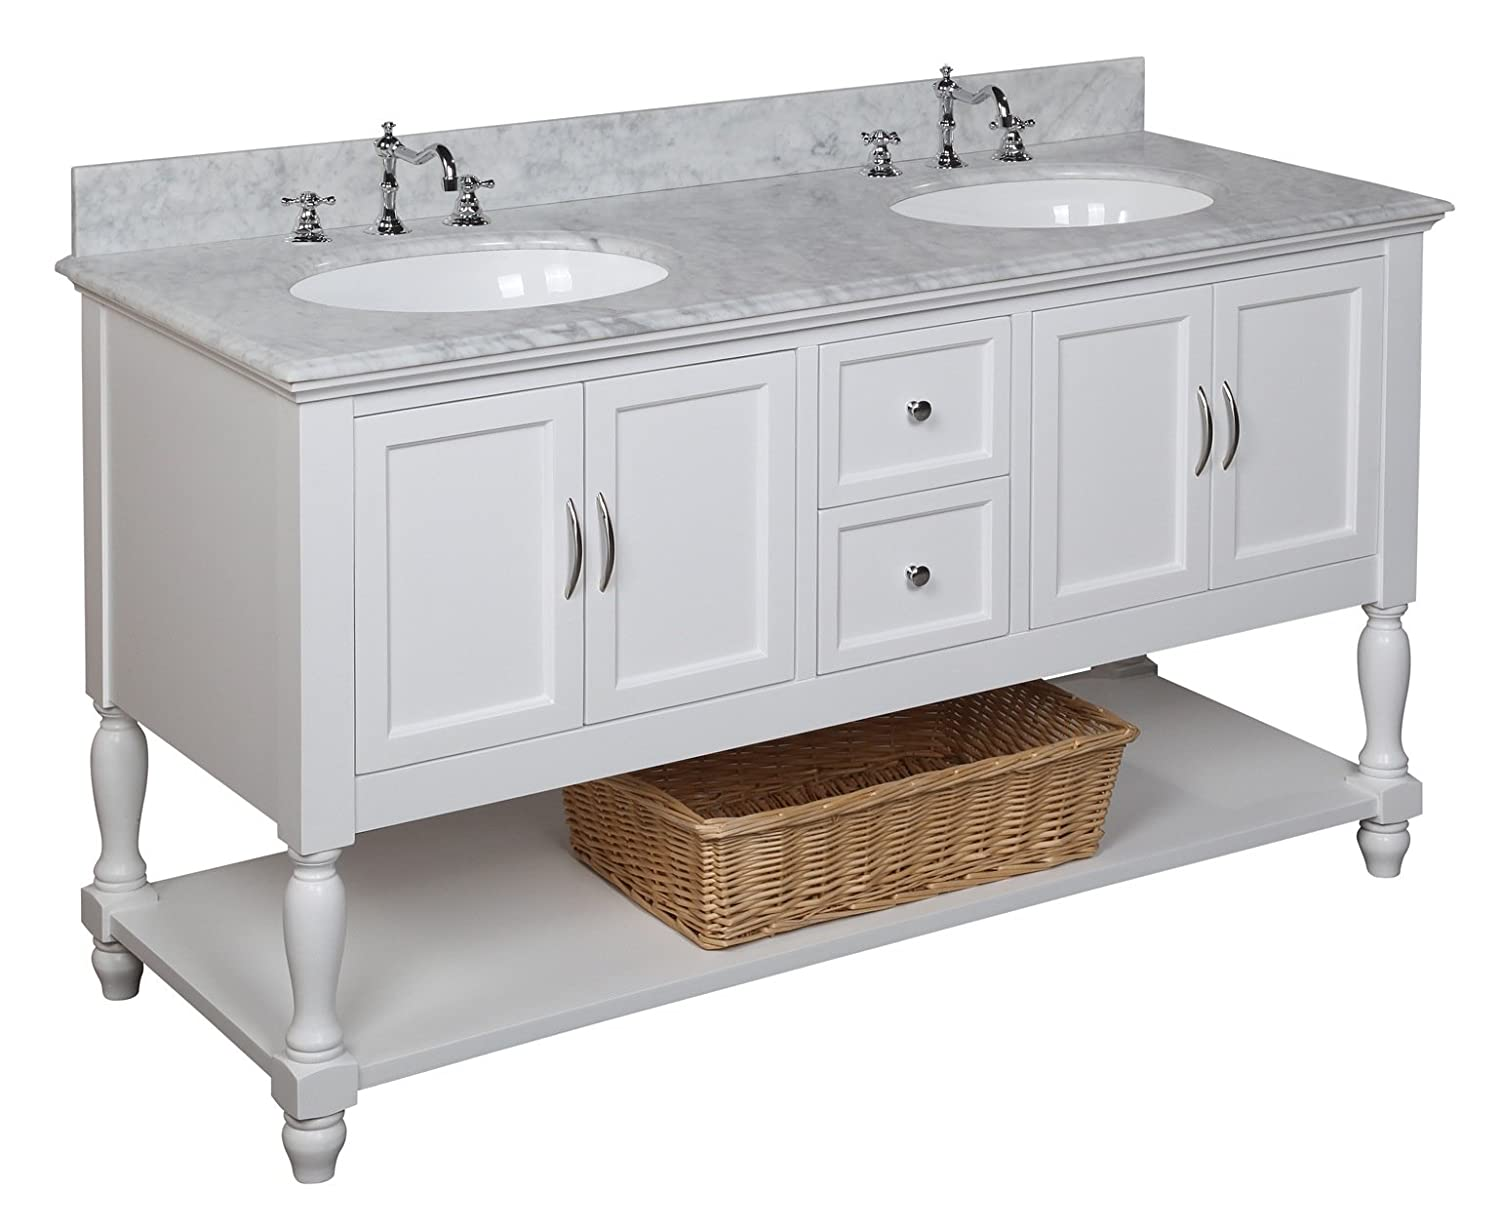 los angeles 10447 d4f4a Beverly 60-inch Double Bathroom Vanity (Carrara/White): Includes White  Cabinet with Soft Close Drawers, Authentic Italian Carrara Marble  Countertop, ...